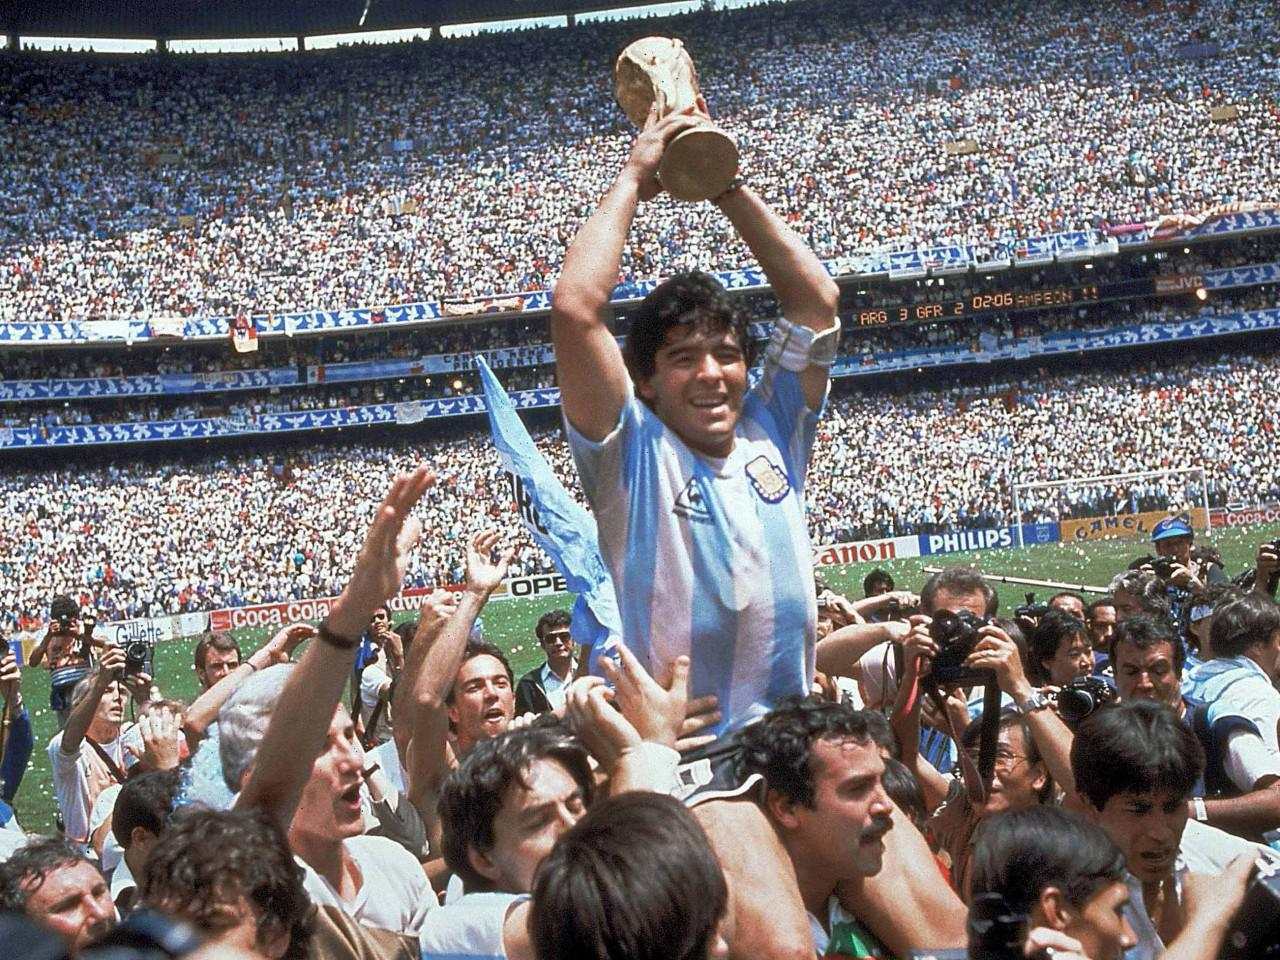 soccer-wcup-argentina-germany-finals.jpeg1-1280x960